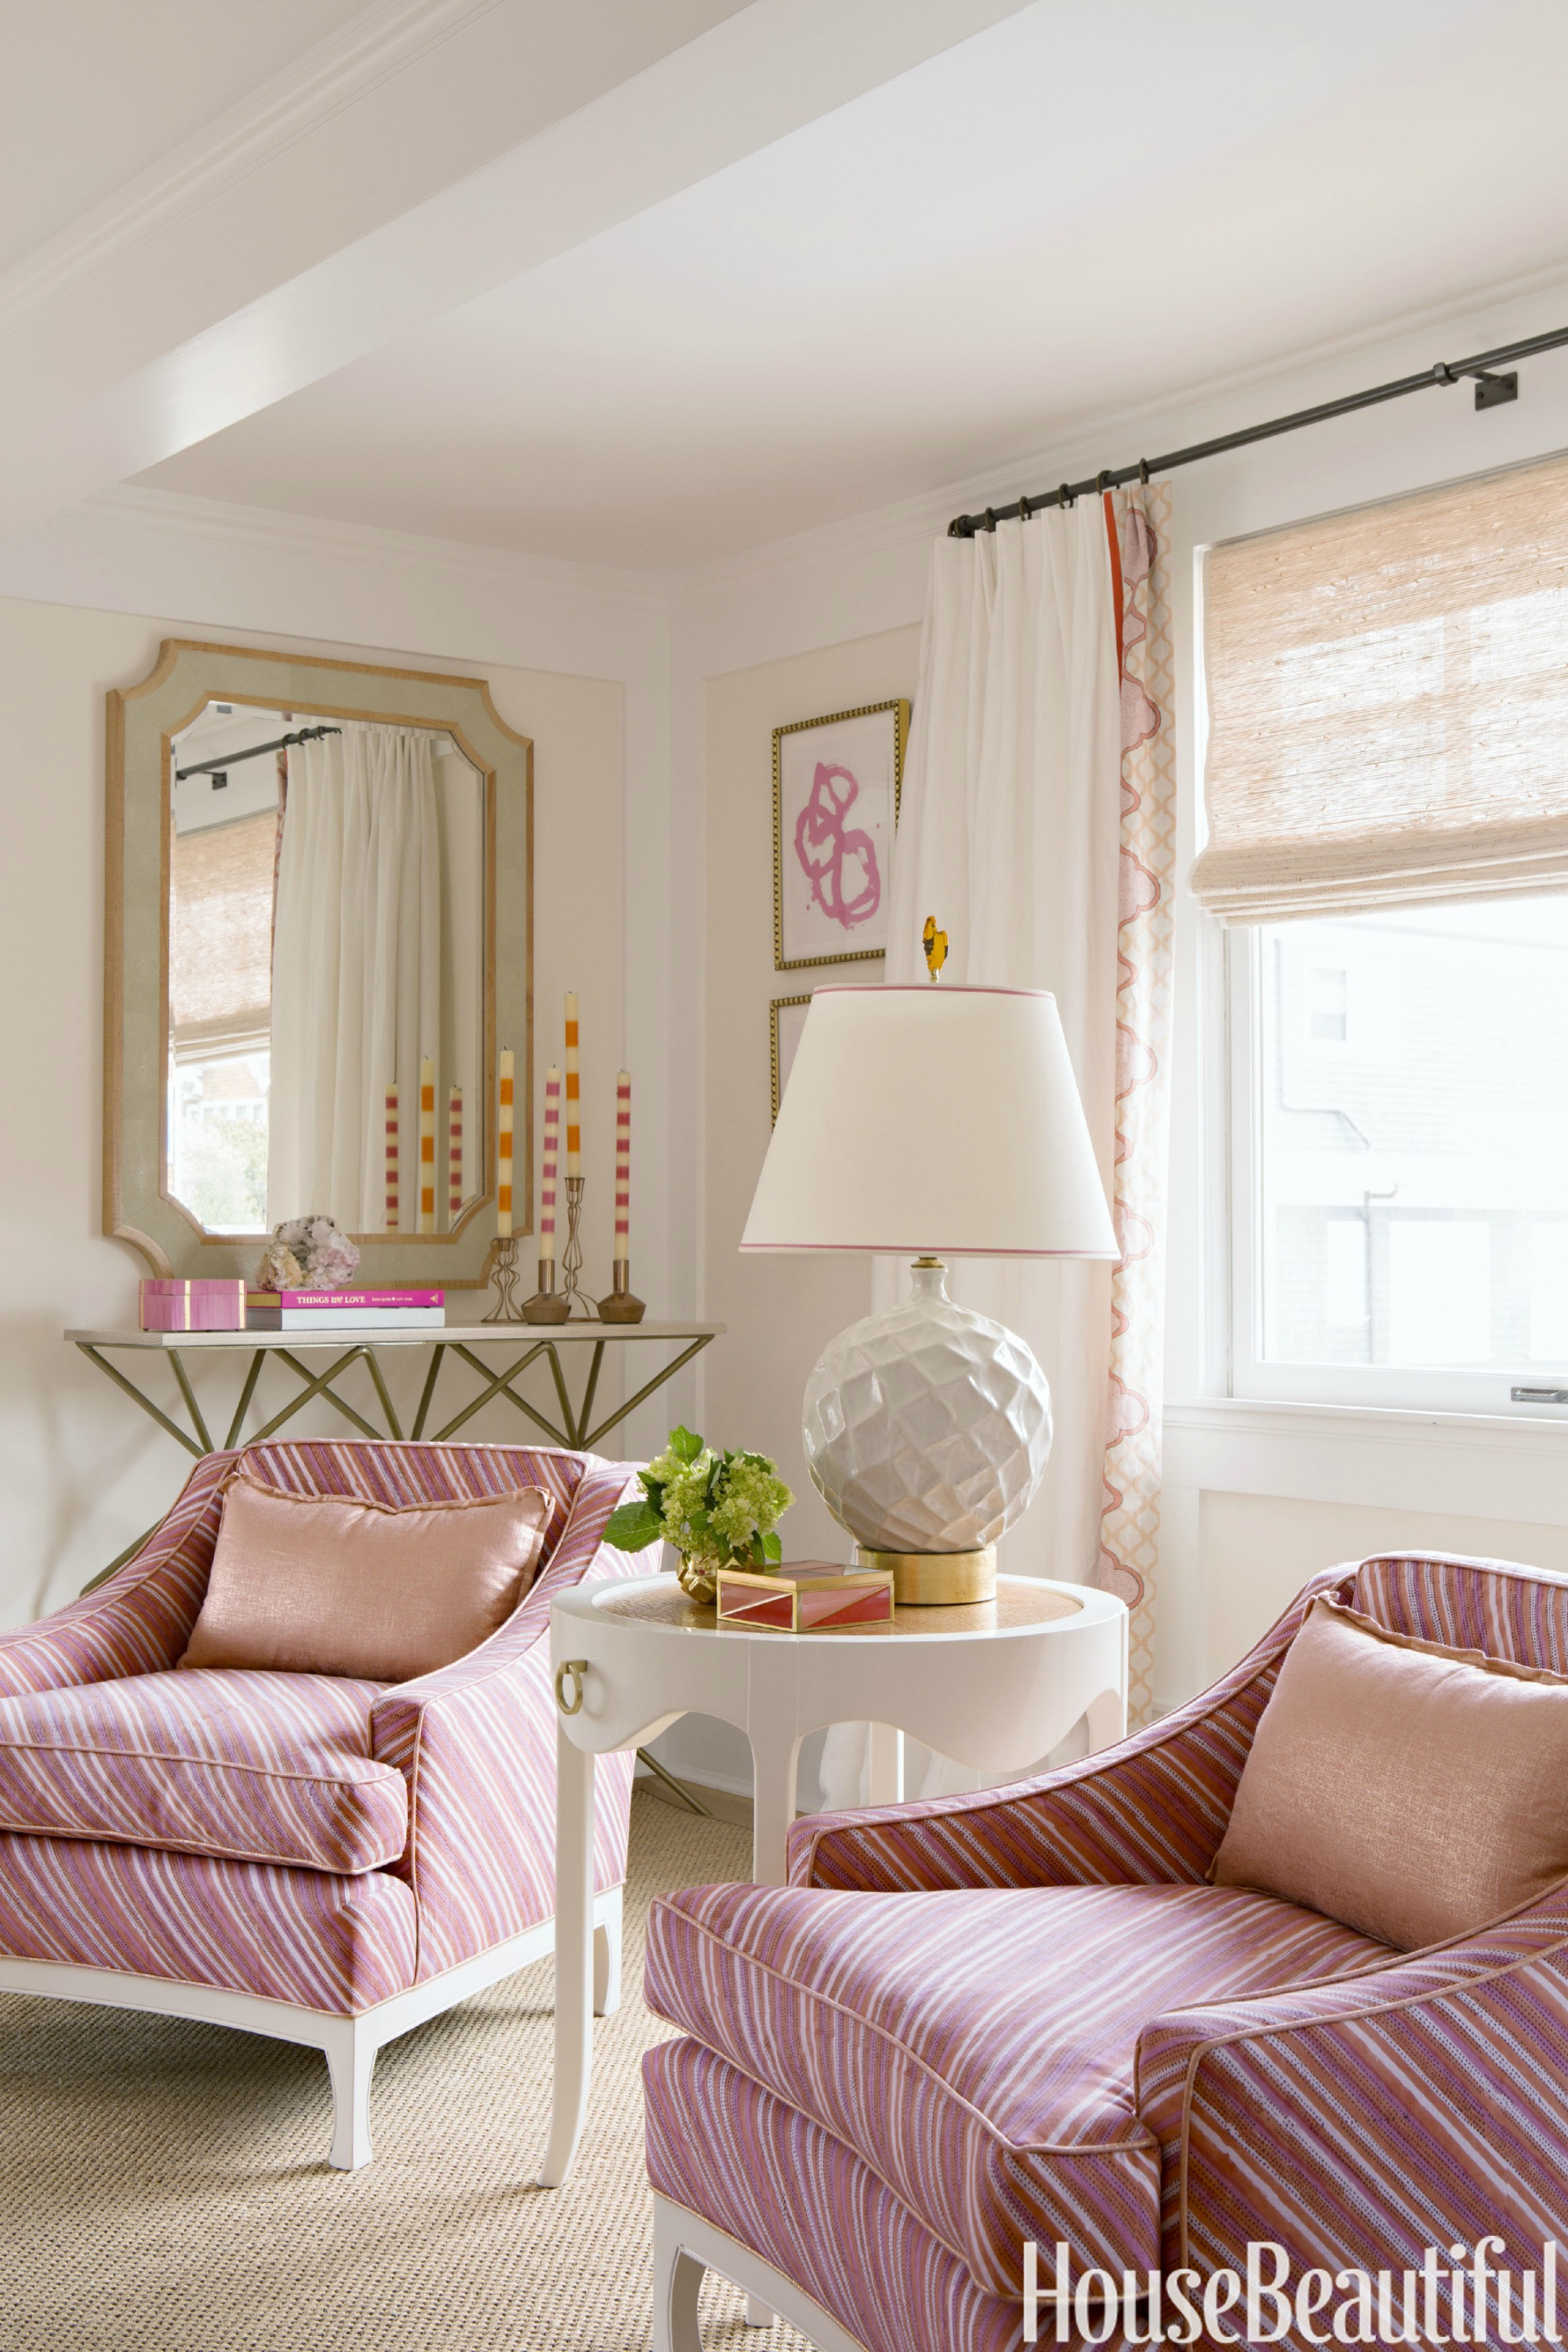 Beautiful Curtains For Bedroom Pastel San Fransisco Home Melissa Warner Rothblum And